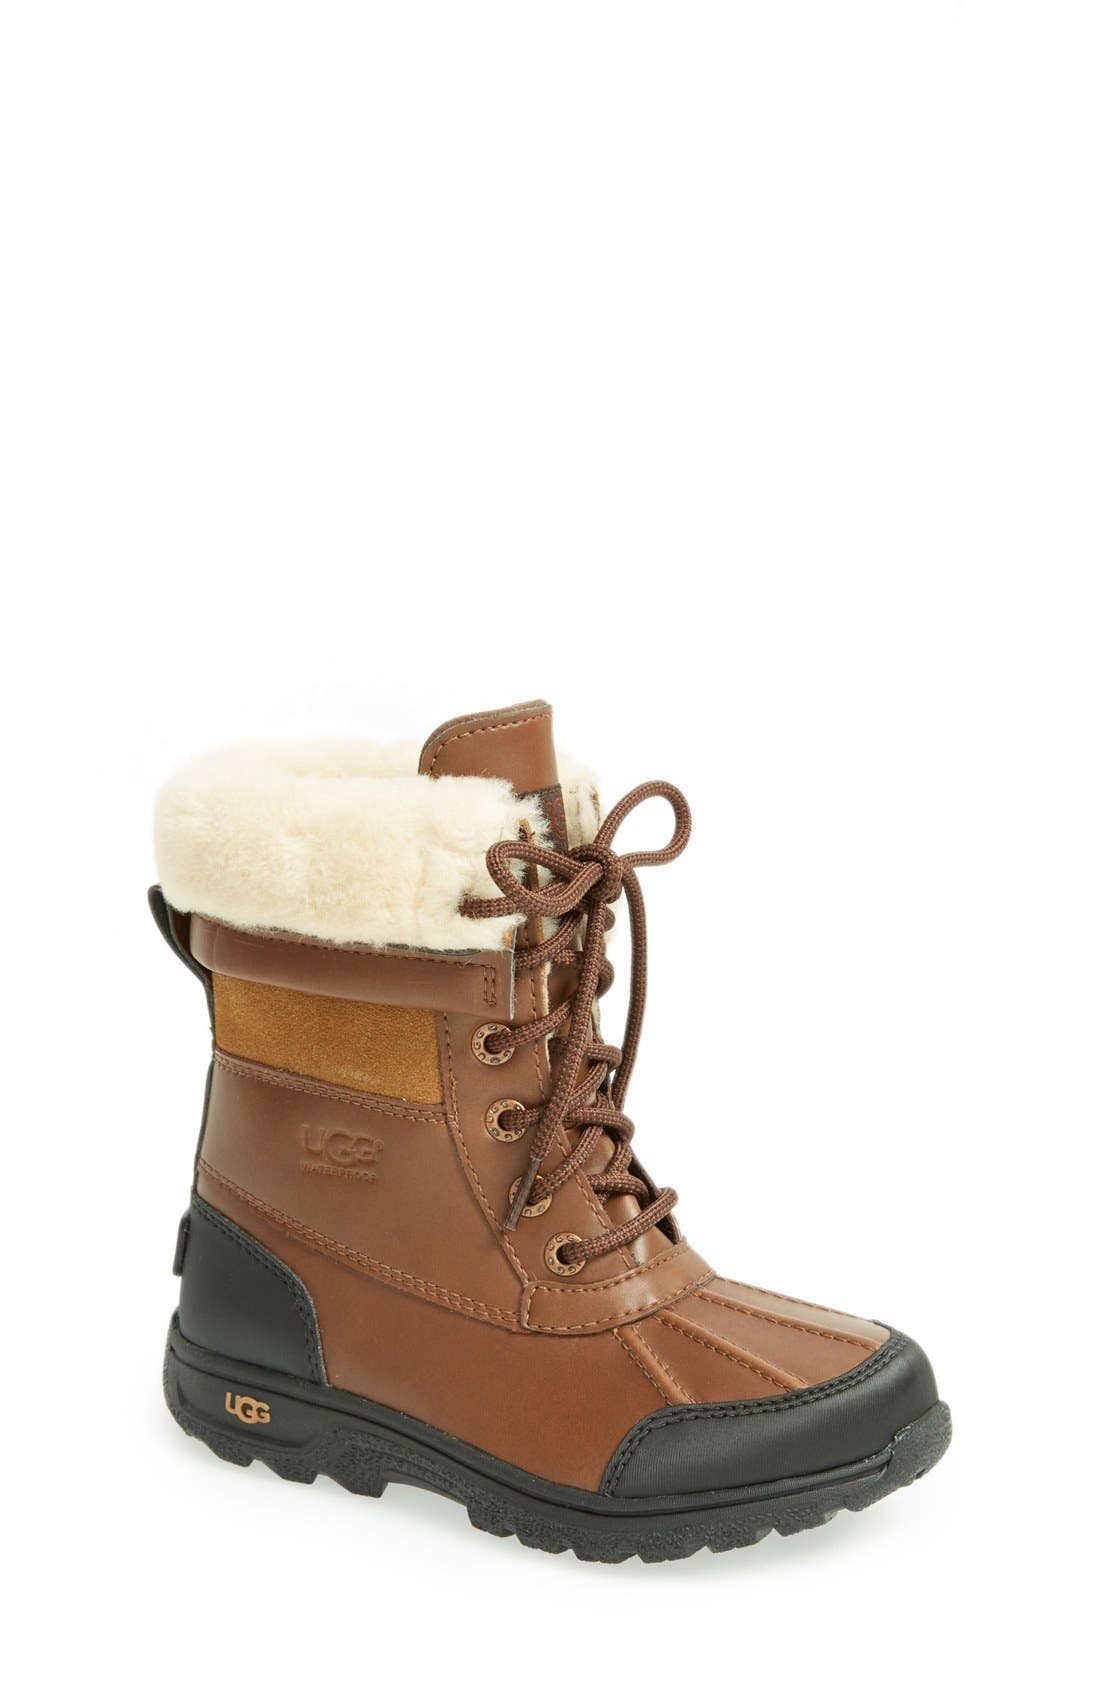 Alternate Image 1 Selected - UGG® 'Butte II' Waterproof Leather Boot (Little Kid & Big Kid)